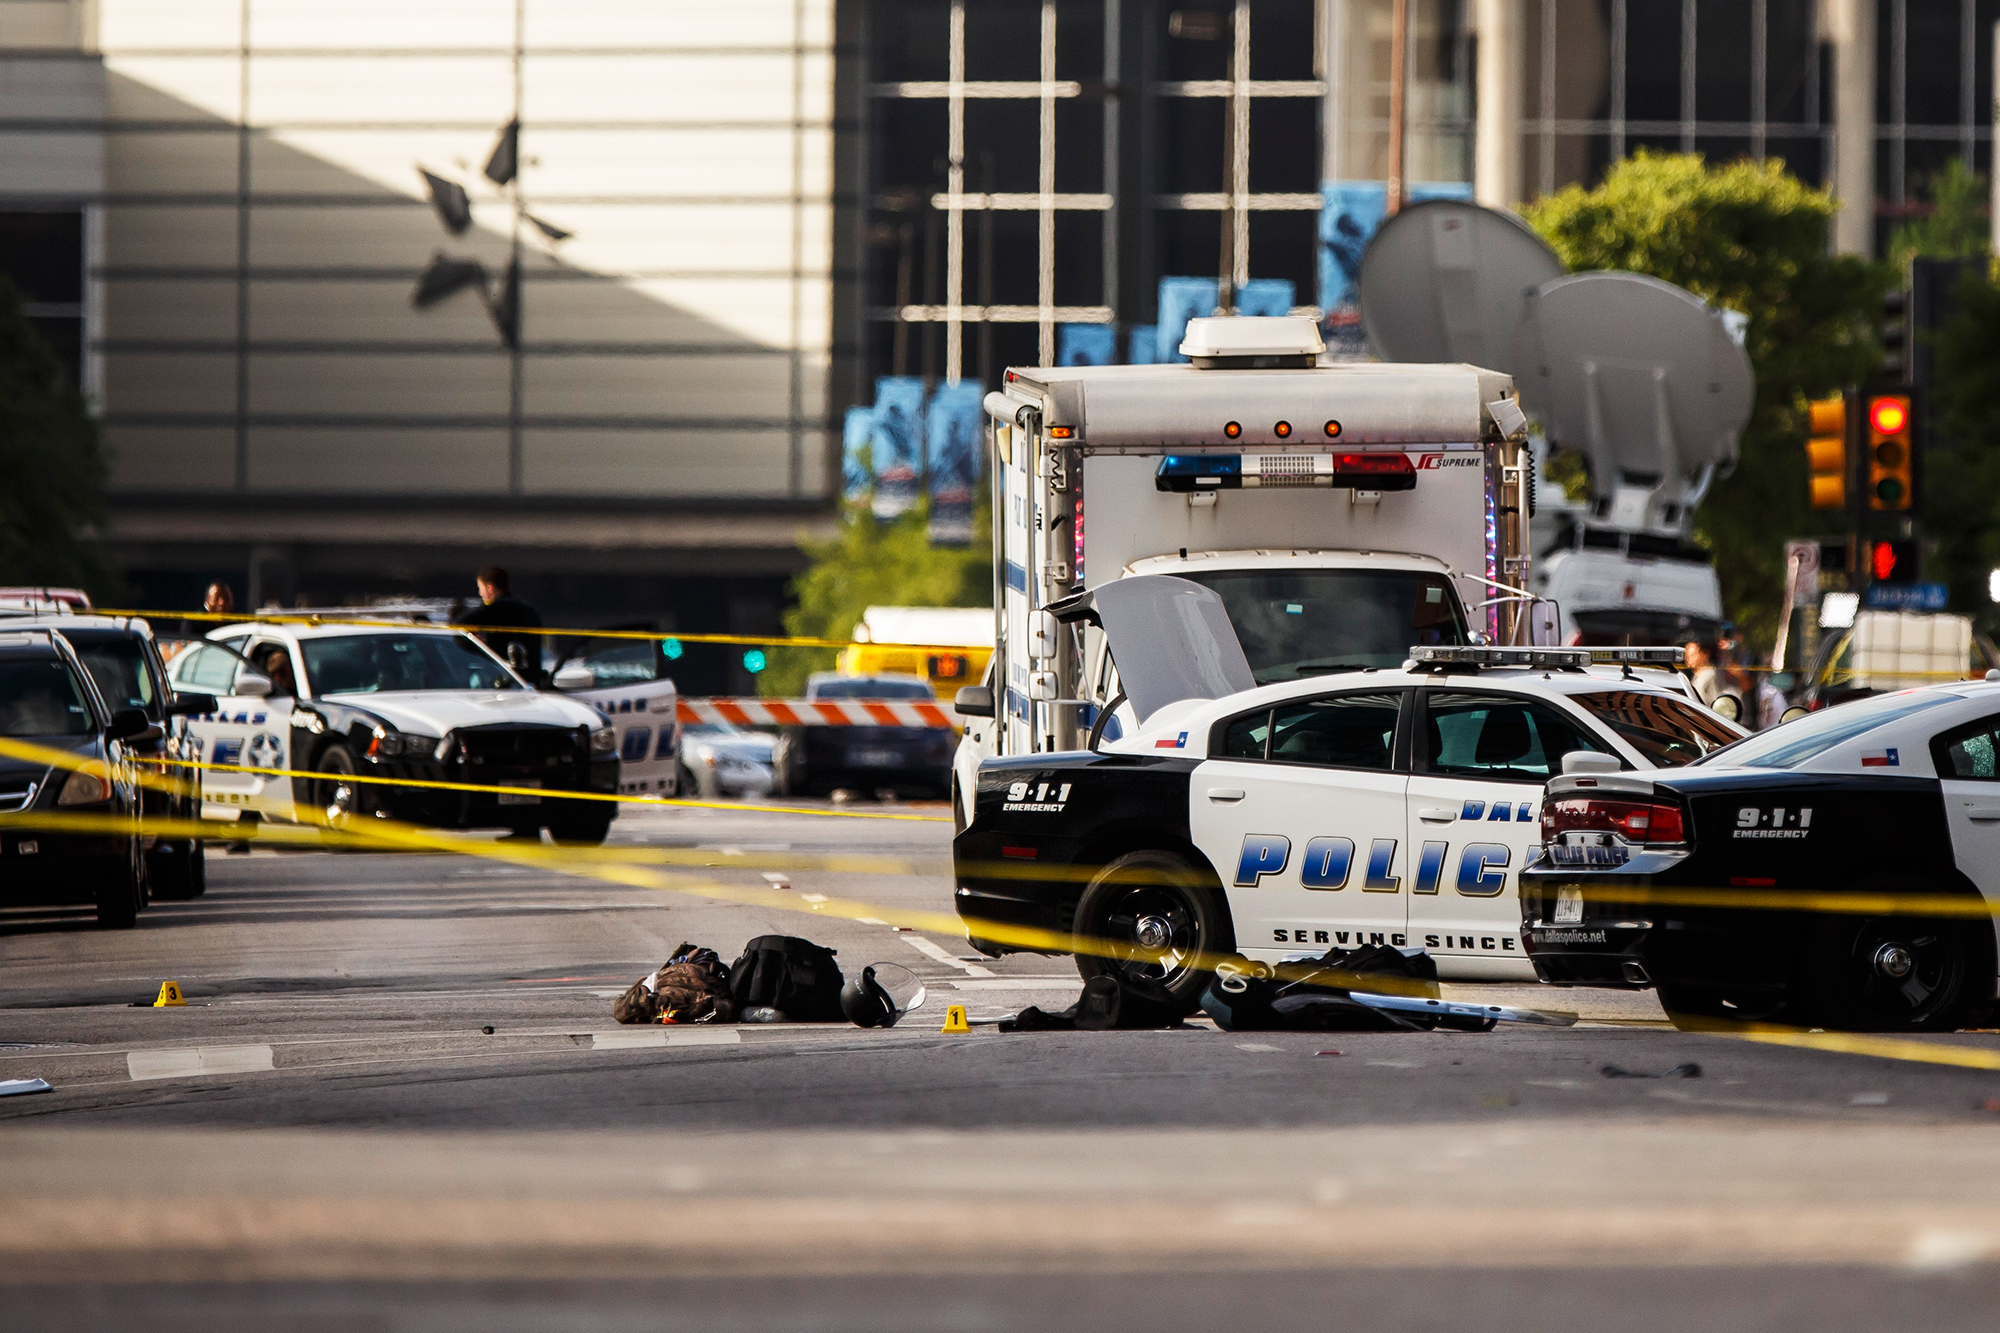 Bullet casings and police gear are laid out at the scene of a sniper shooting, in Dallas, on July 8, 2016.